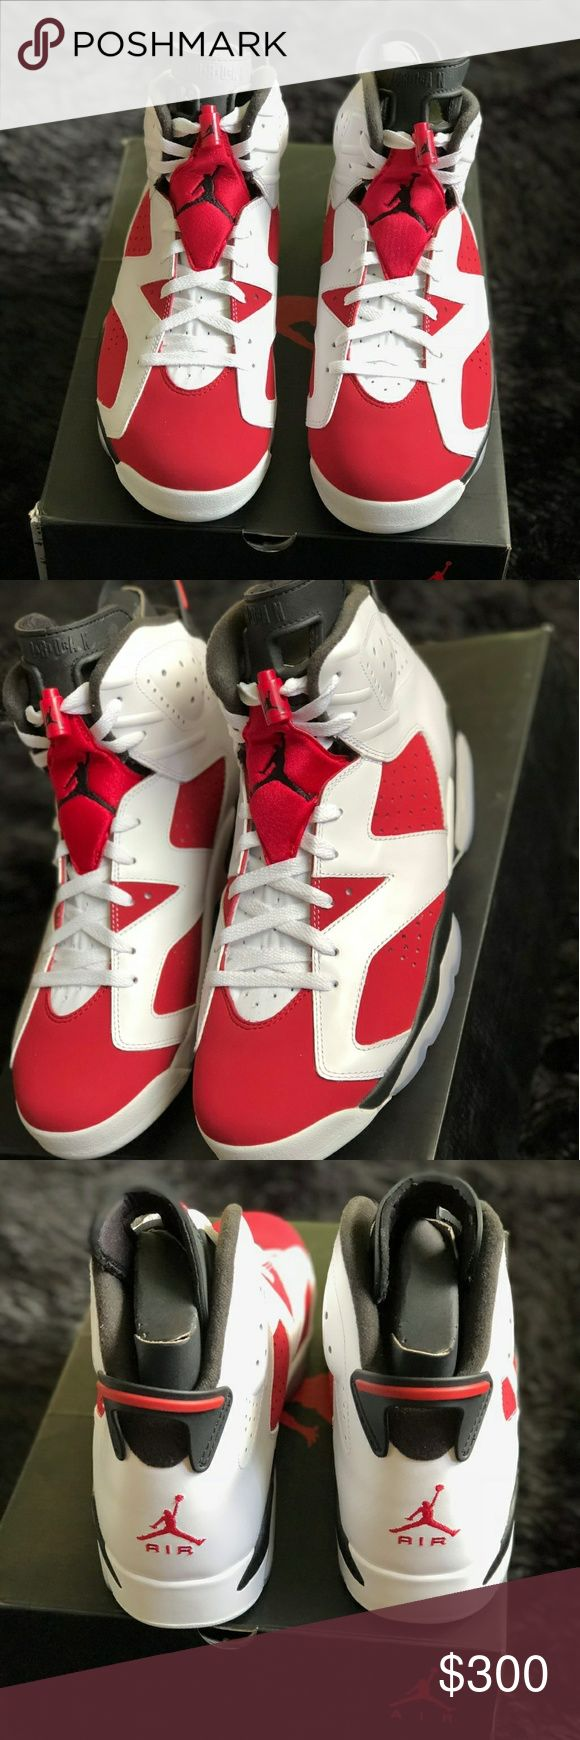 Jordan 6s Jordan Carmine 6s Size 11 Brand New Never Worn They Are Deadstock Comes With Box No Reciept Price Is 300 Because Of The Fees $400 On Flight Club. Jordan Shoes Sneakers